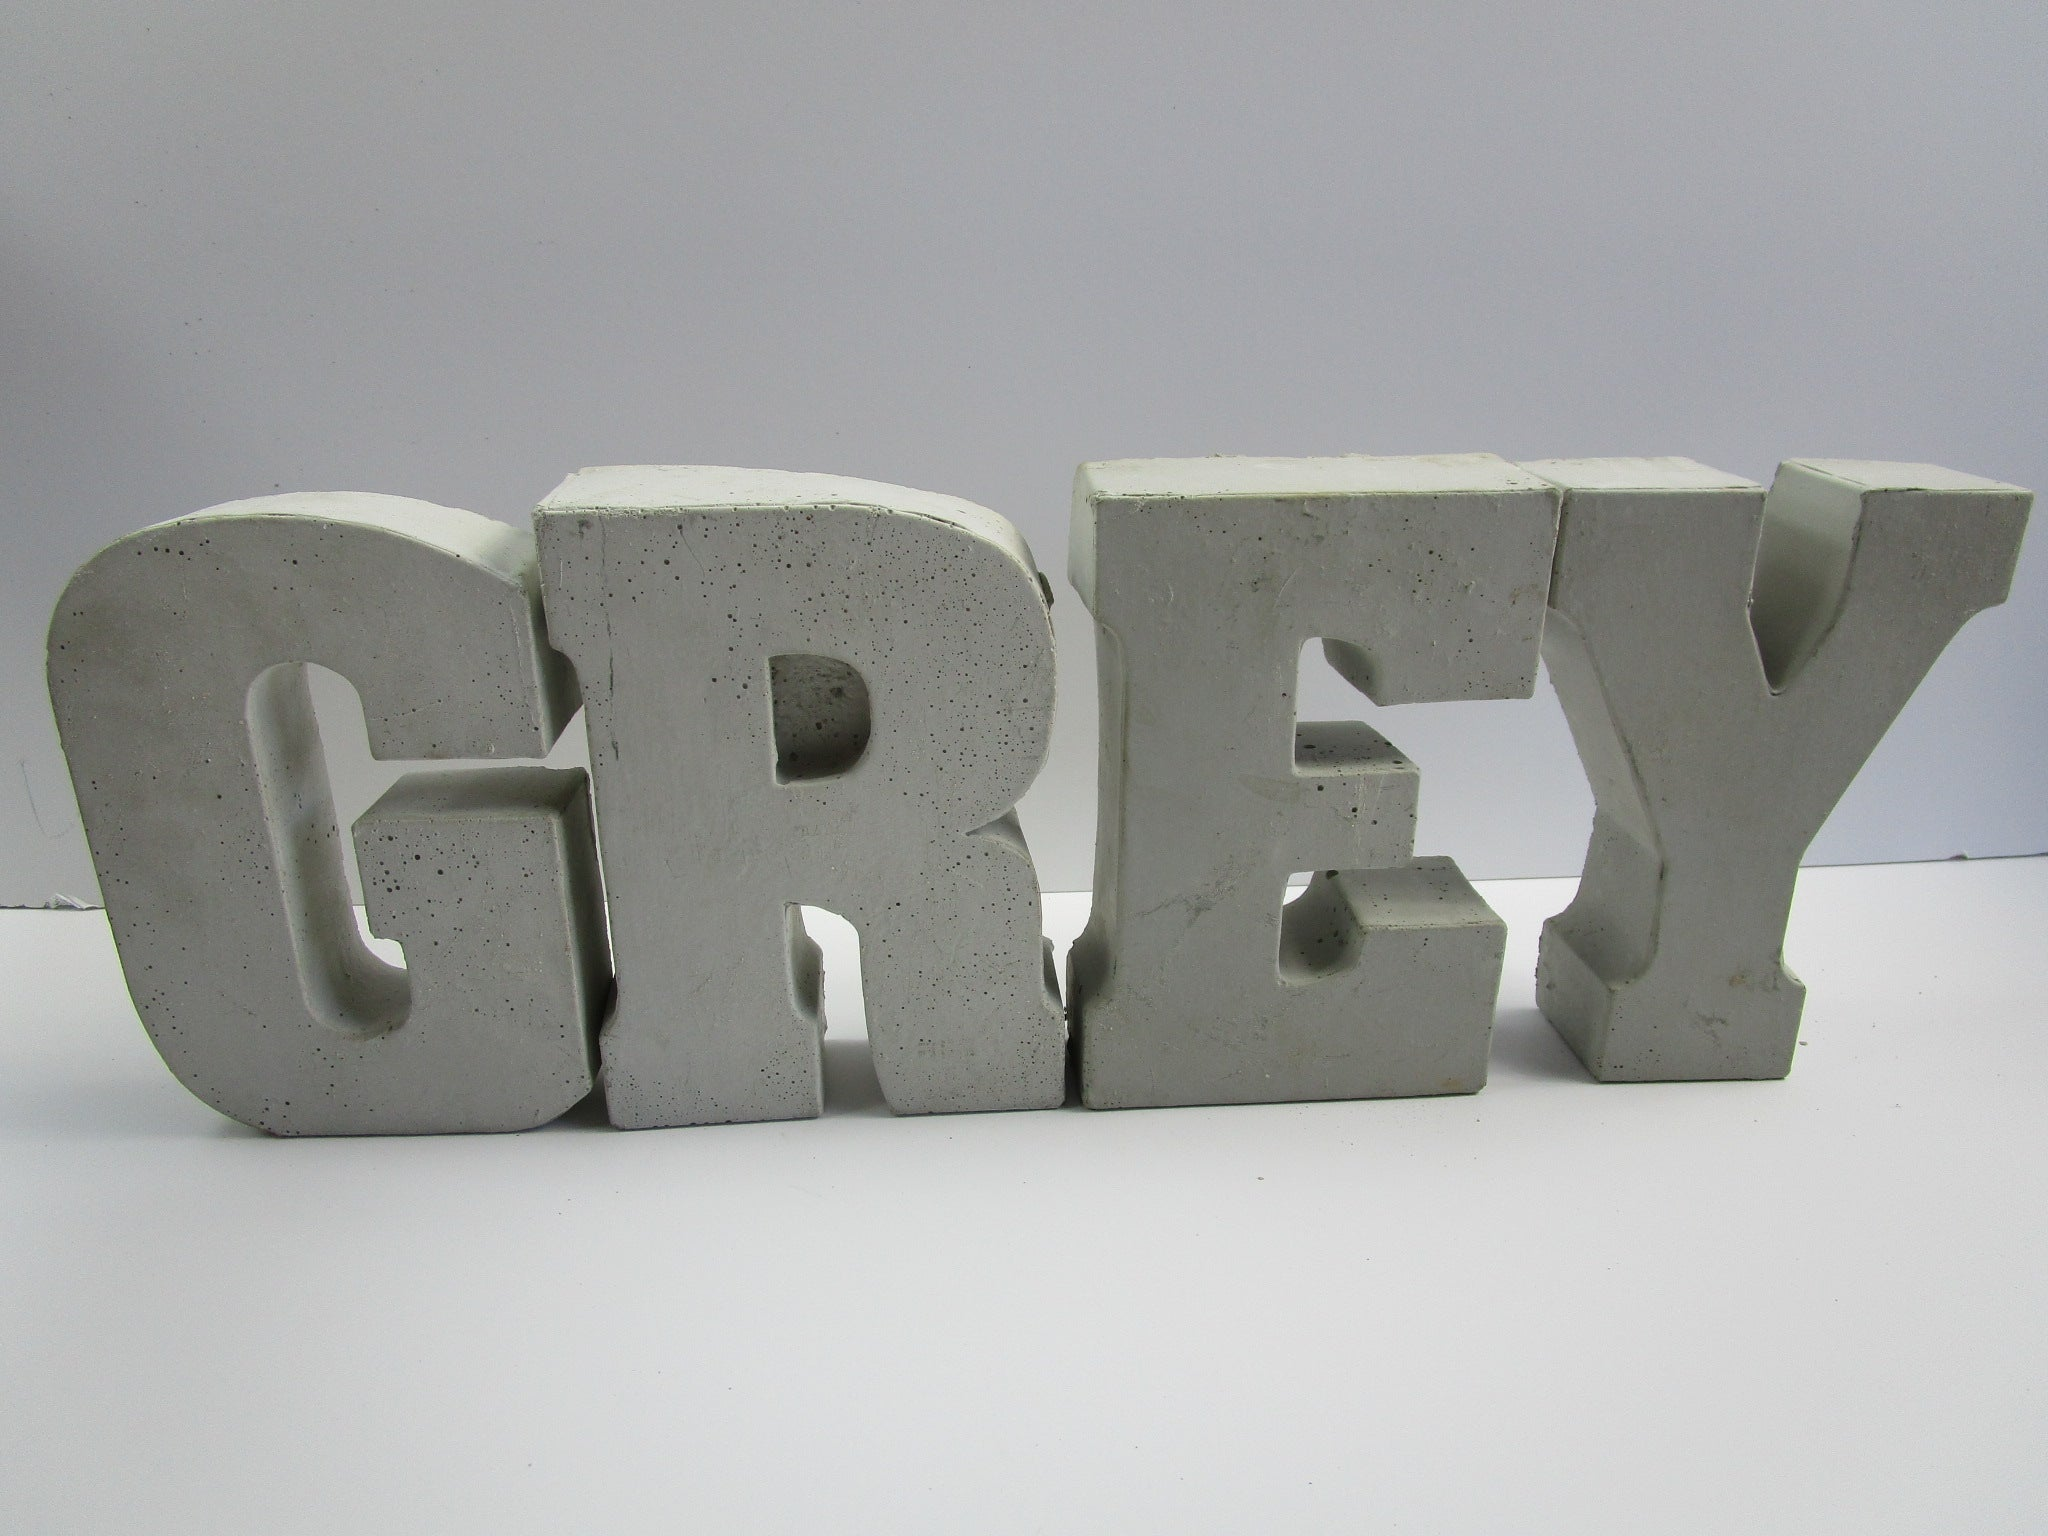 Superior Cheap Decor, FREE; Discount Home Decor Concrete Letter U201cEu201d, Hand Made.